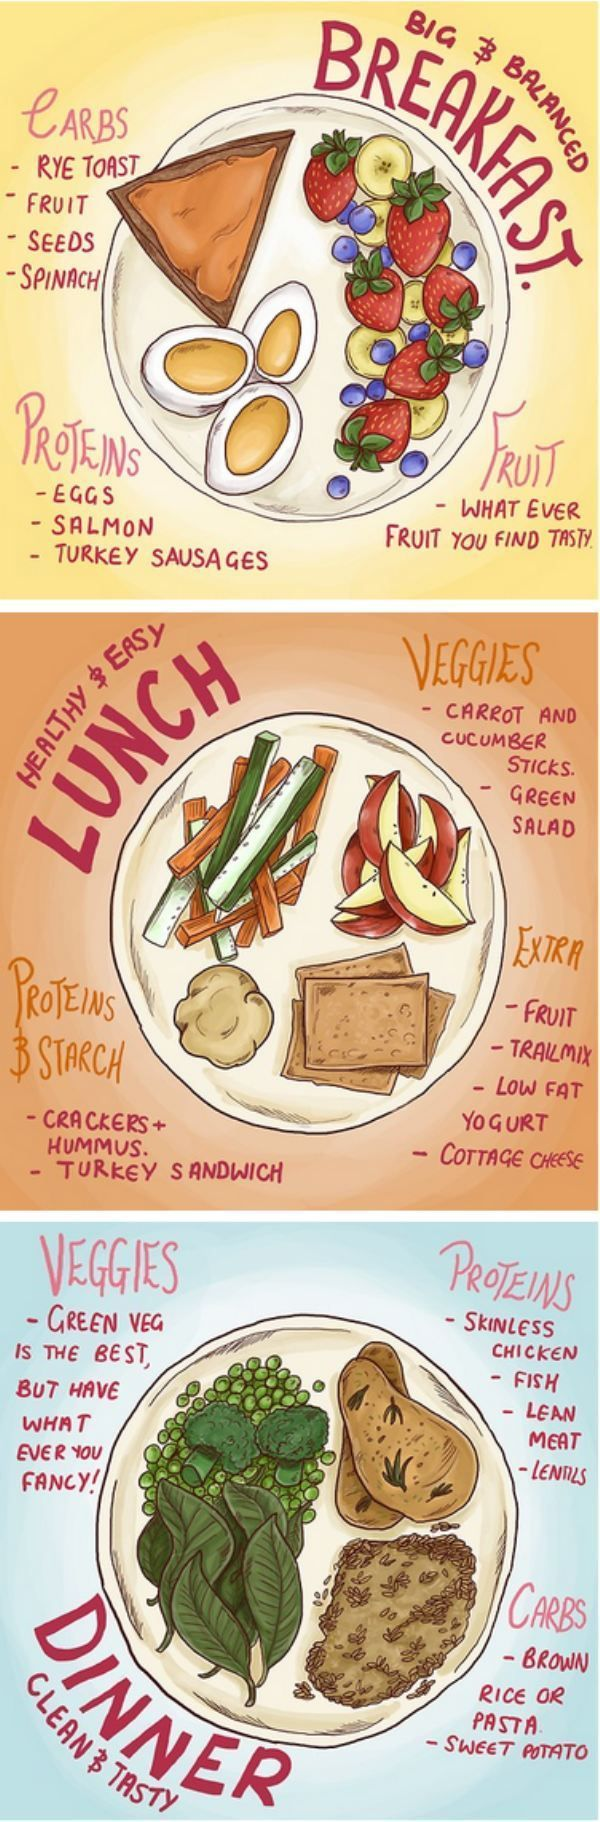 Healthy Breakfast And Lunch Ideas For Weight Loss